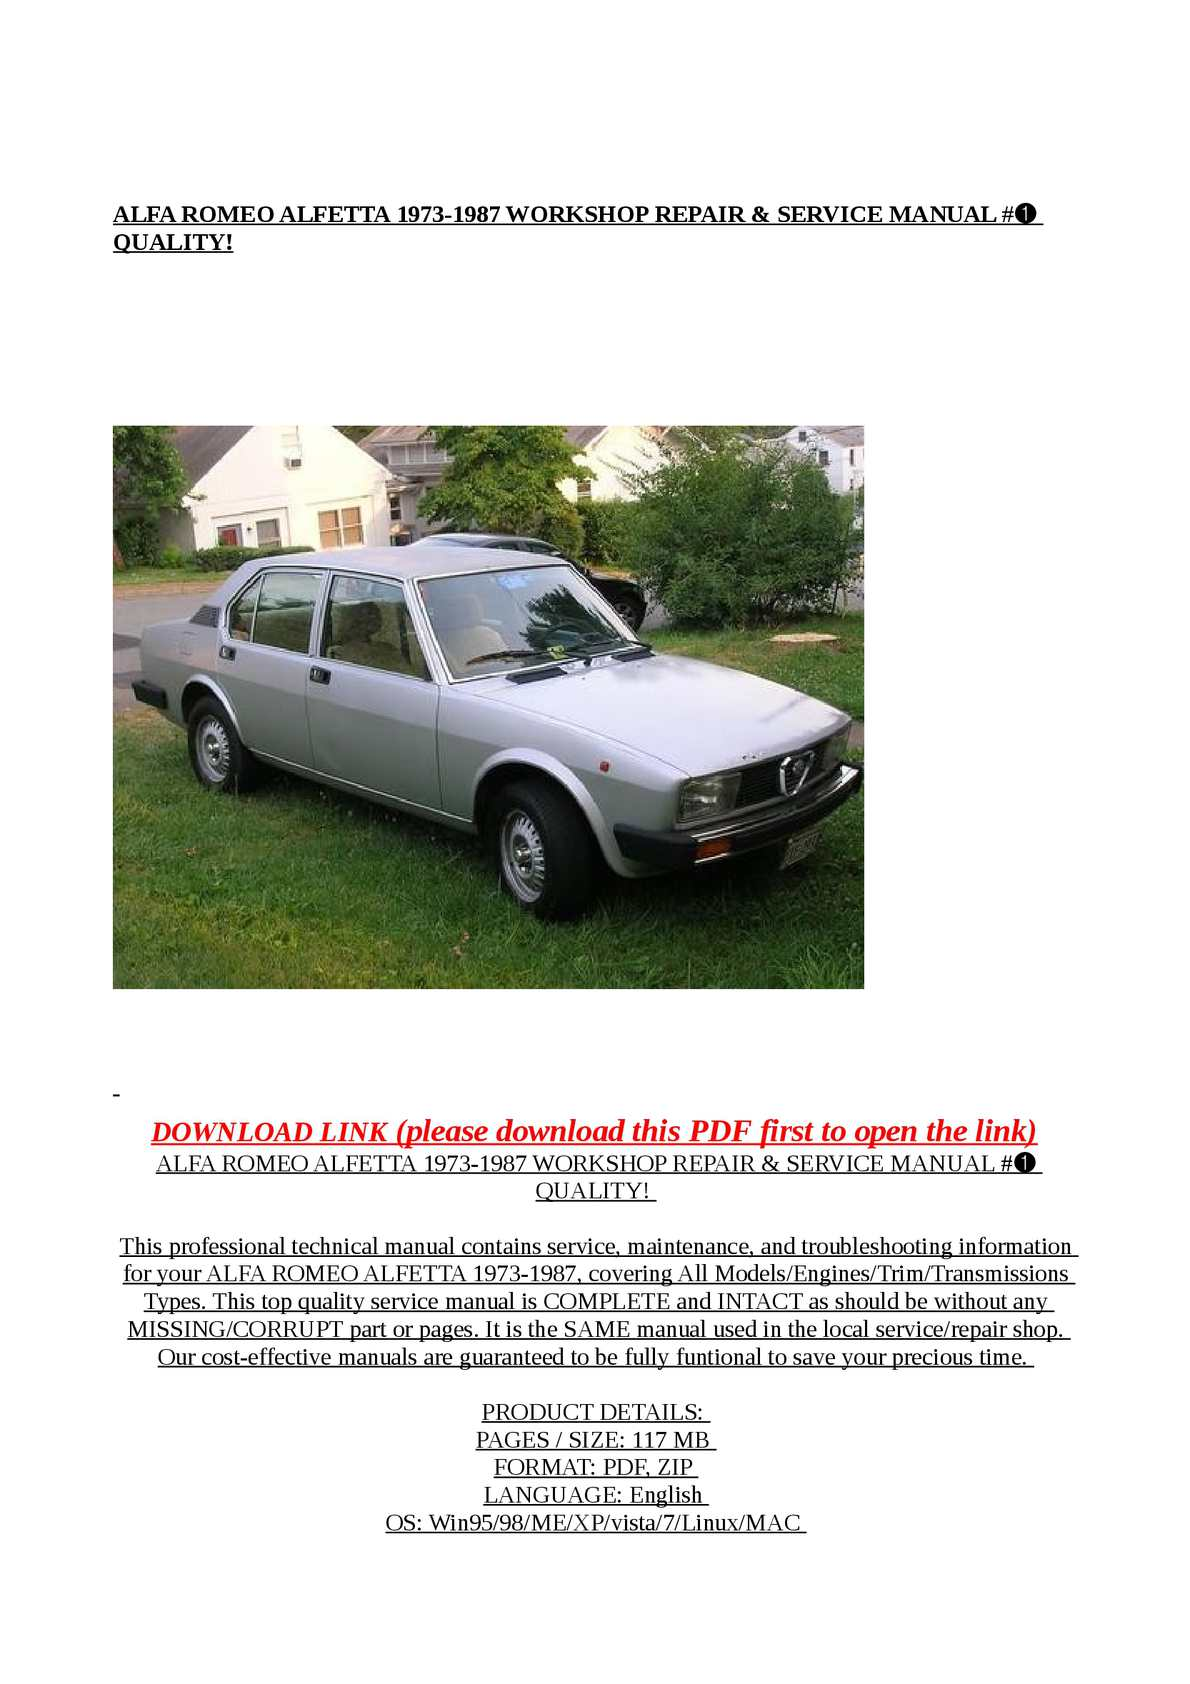 Calaméo - ALFA ROMEO ALFETTA 1973-1987 WORKSHOP REPAIR & SERVICE MANUAL #➀  QUALITY!